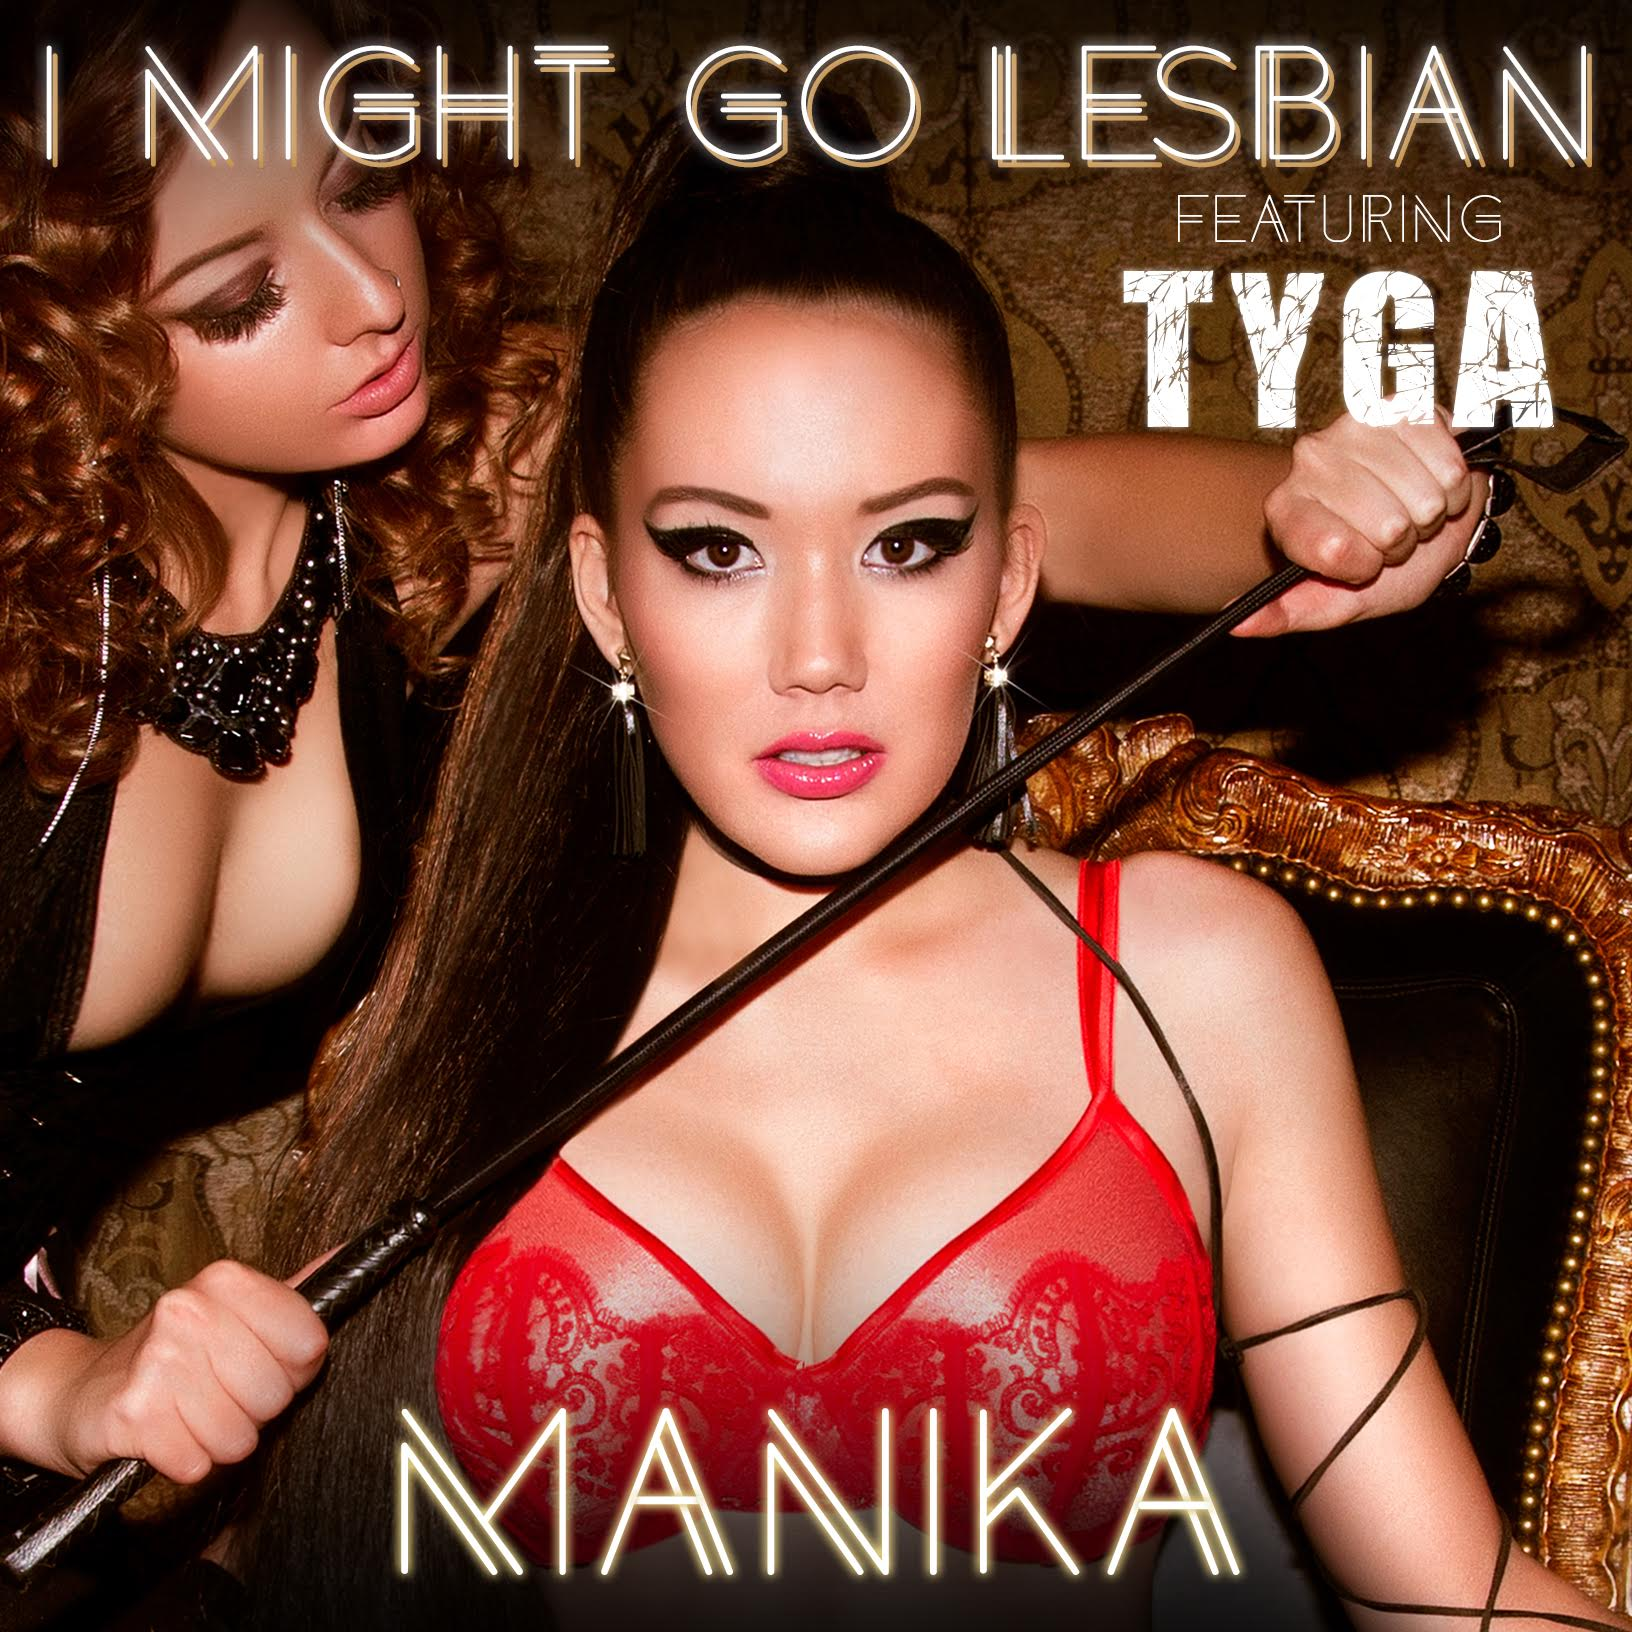 Album Cover - Manika Music - Single - I Might Go Lesbian featuring Tyga